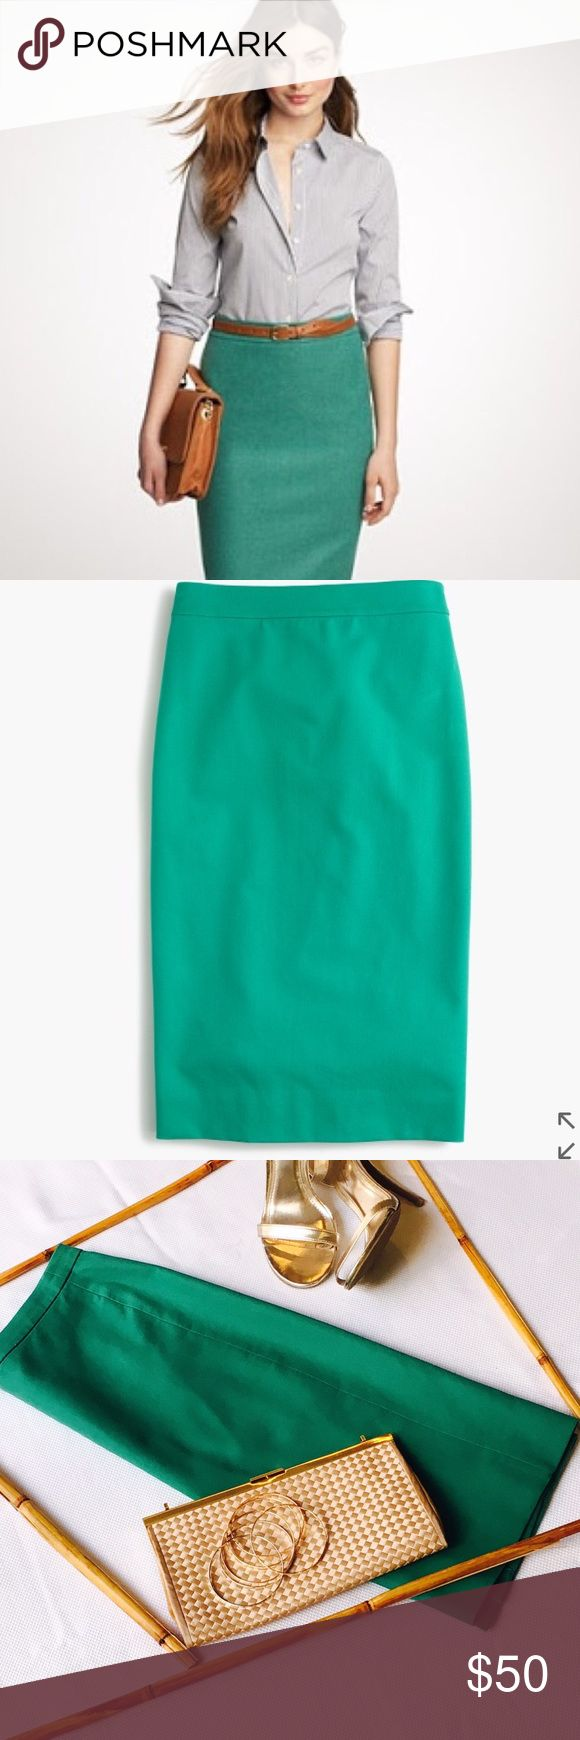 "J. Crew Pencil Skirt in cotton twill Gorgeous Green Pencil Skirt ! Waist 30"" Good Condition! J. Crew Skirts"